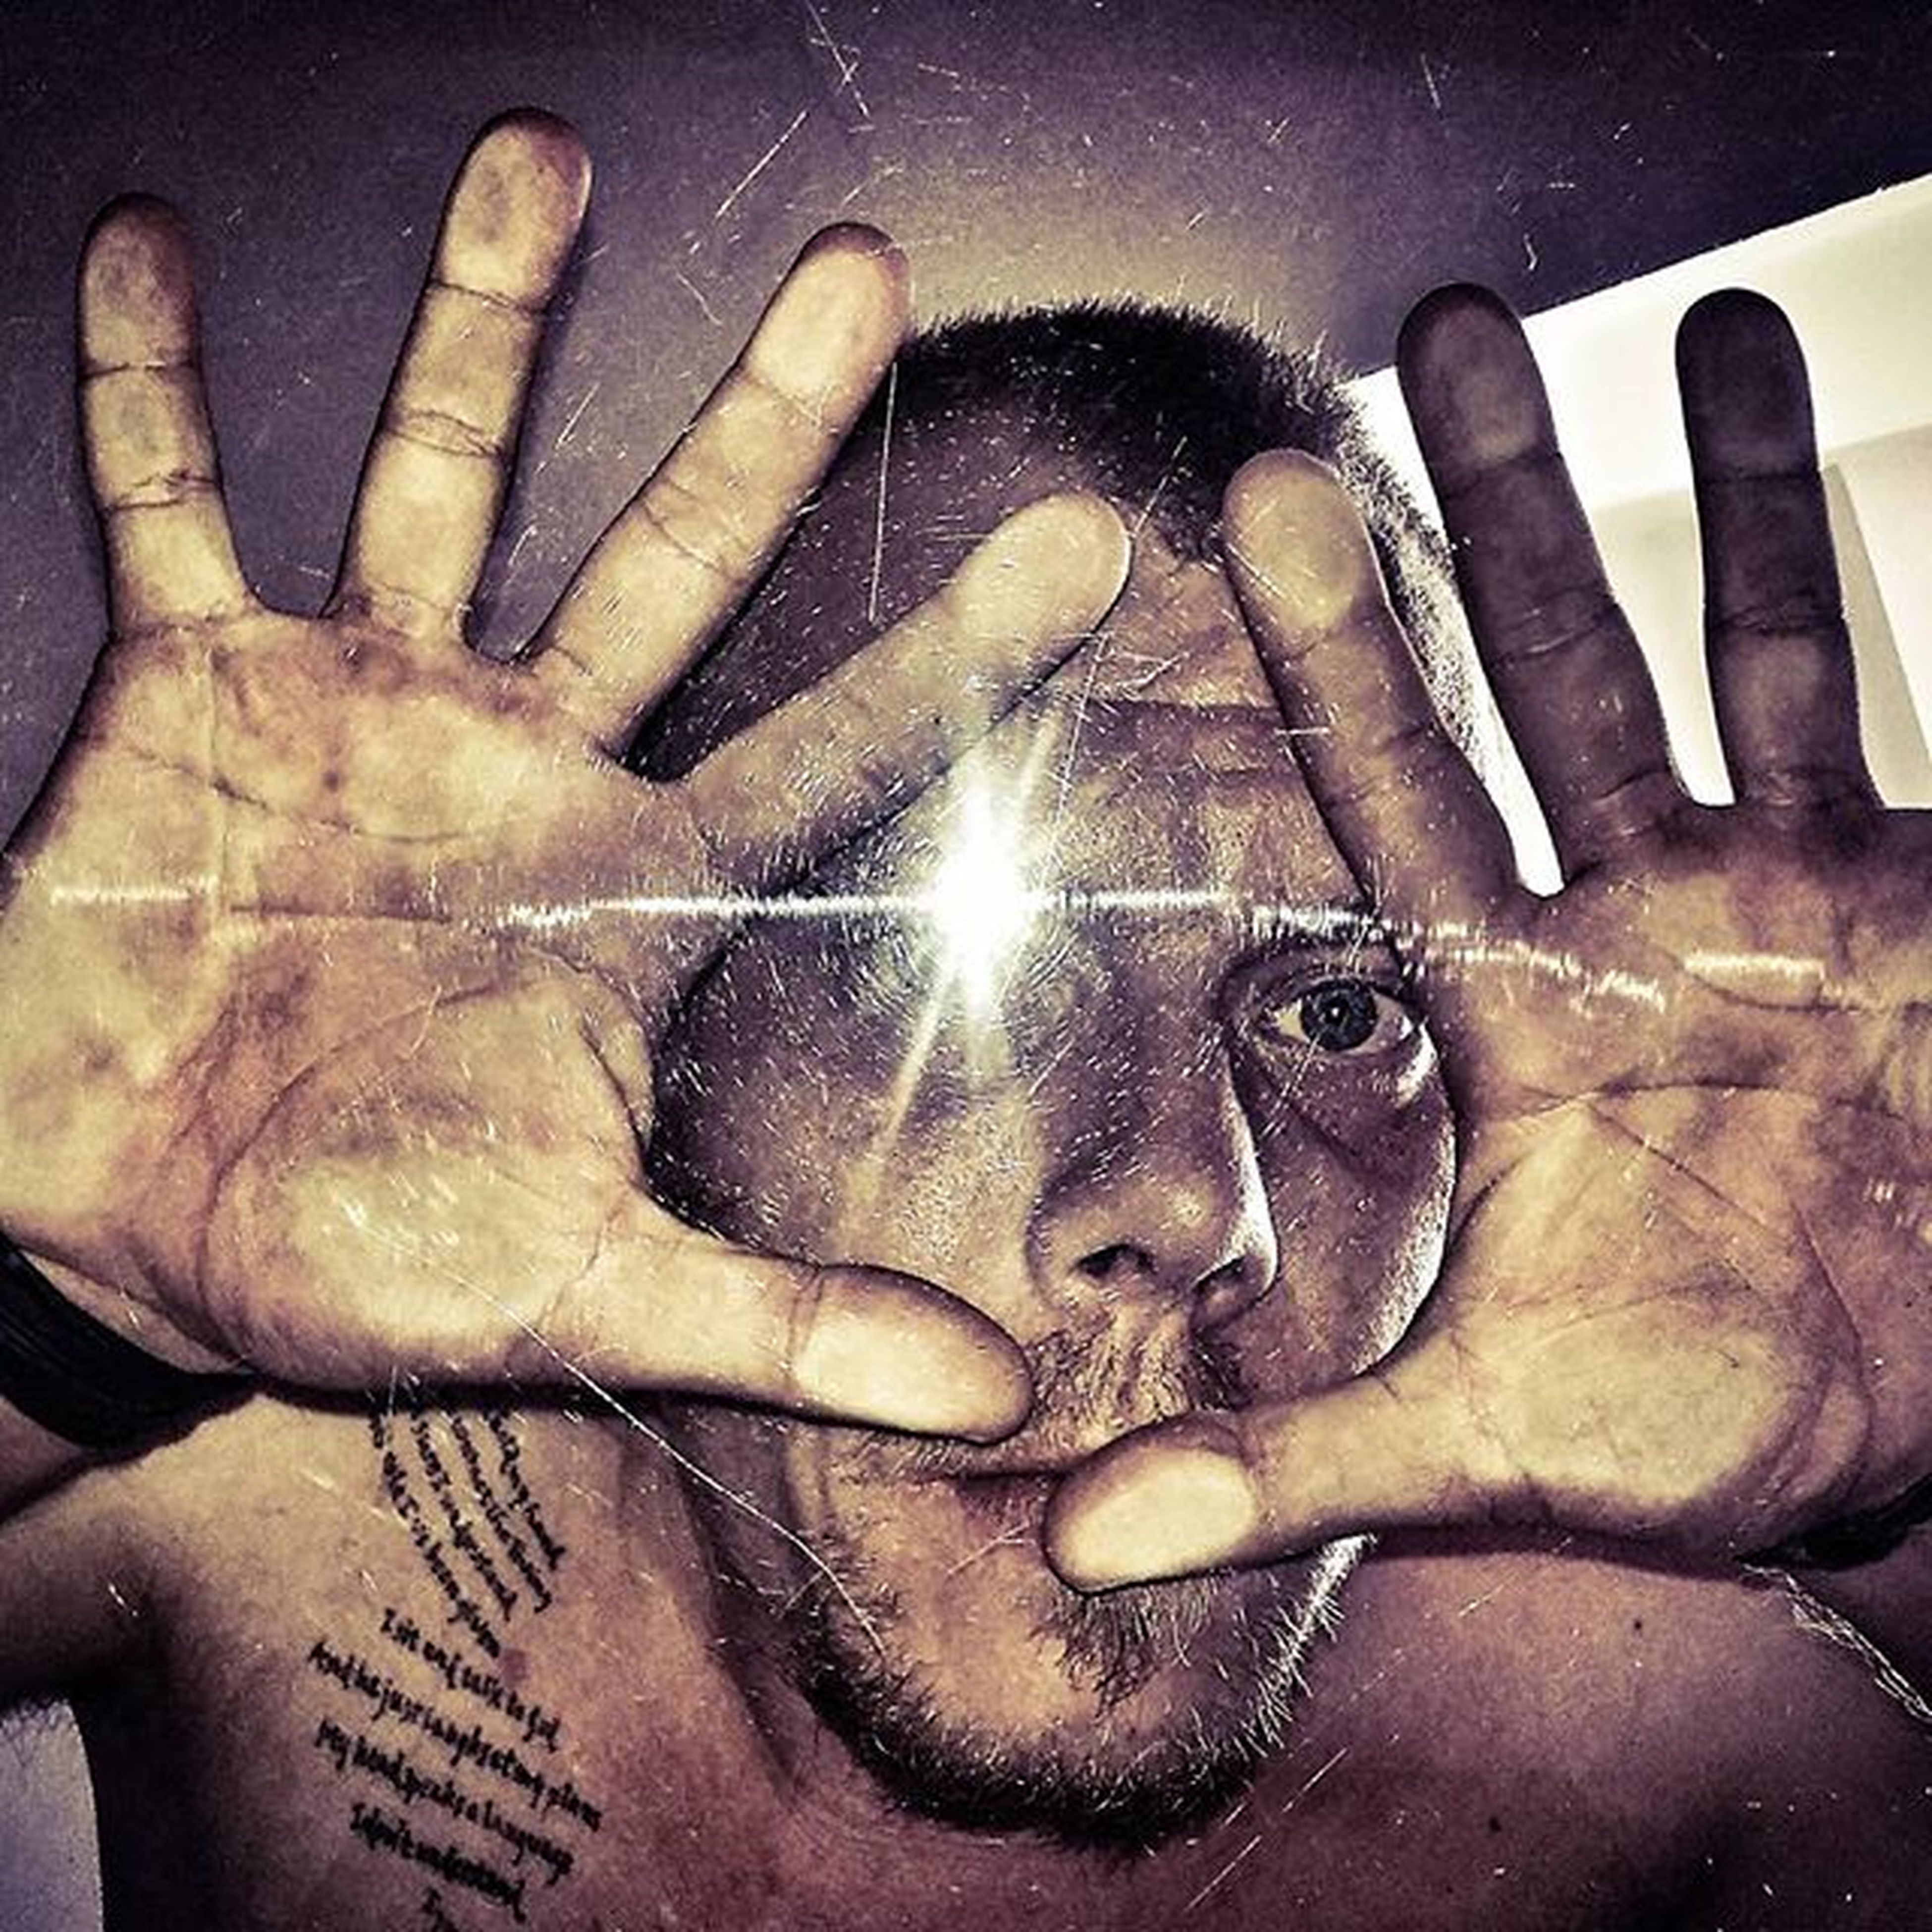 Silly Hands Finger Face Glasssurface Scratches Table Tablescratches Tattoo Love Eye Capture Moment Photo Flaslight